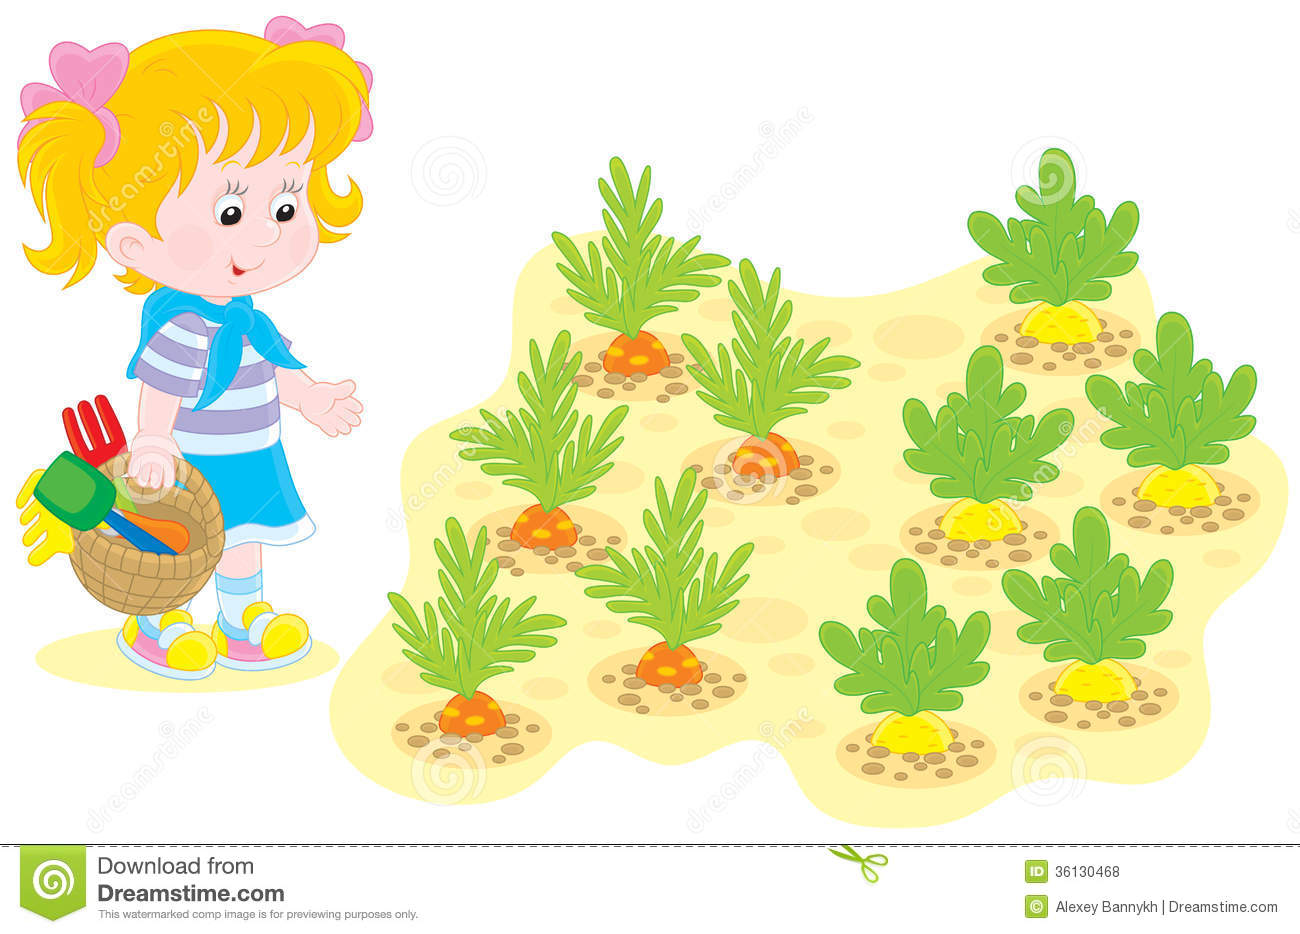 Vegetable garden kids drawing - Vegetable Garden Kids Drawing Girl In A Vegetable Garden Royalty Free Stock Photos Image 36130468 Download